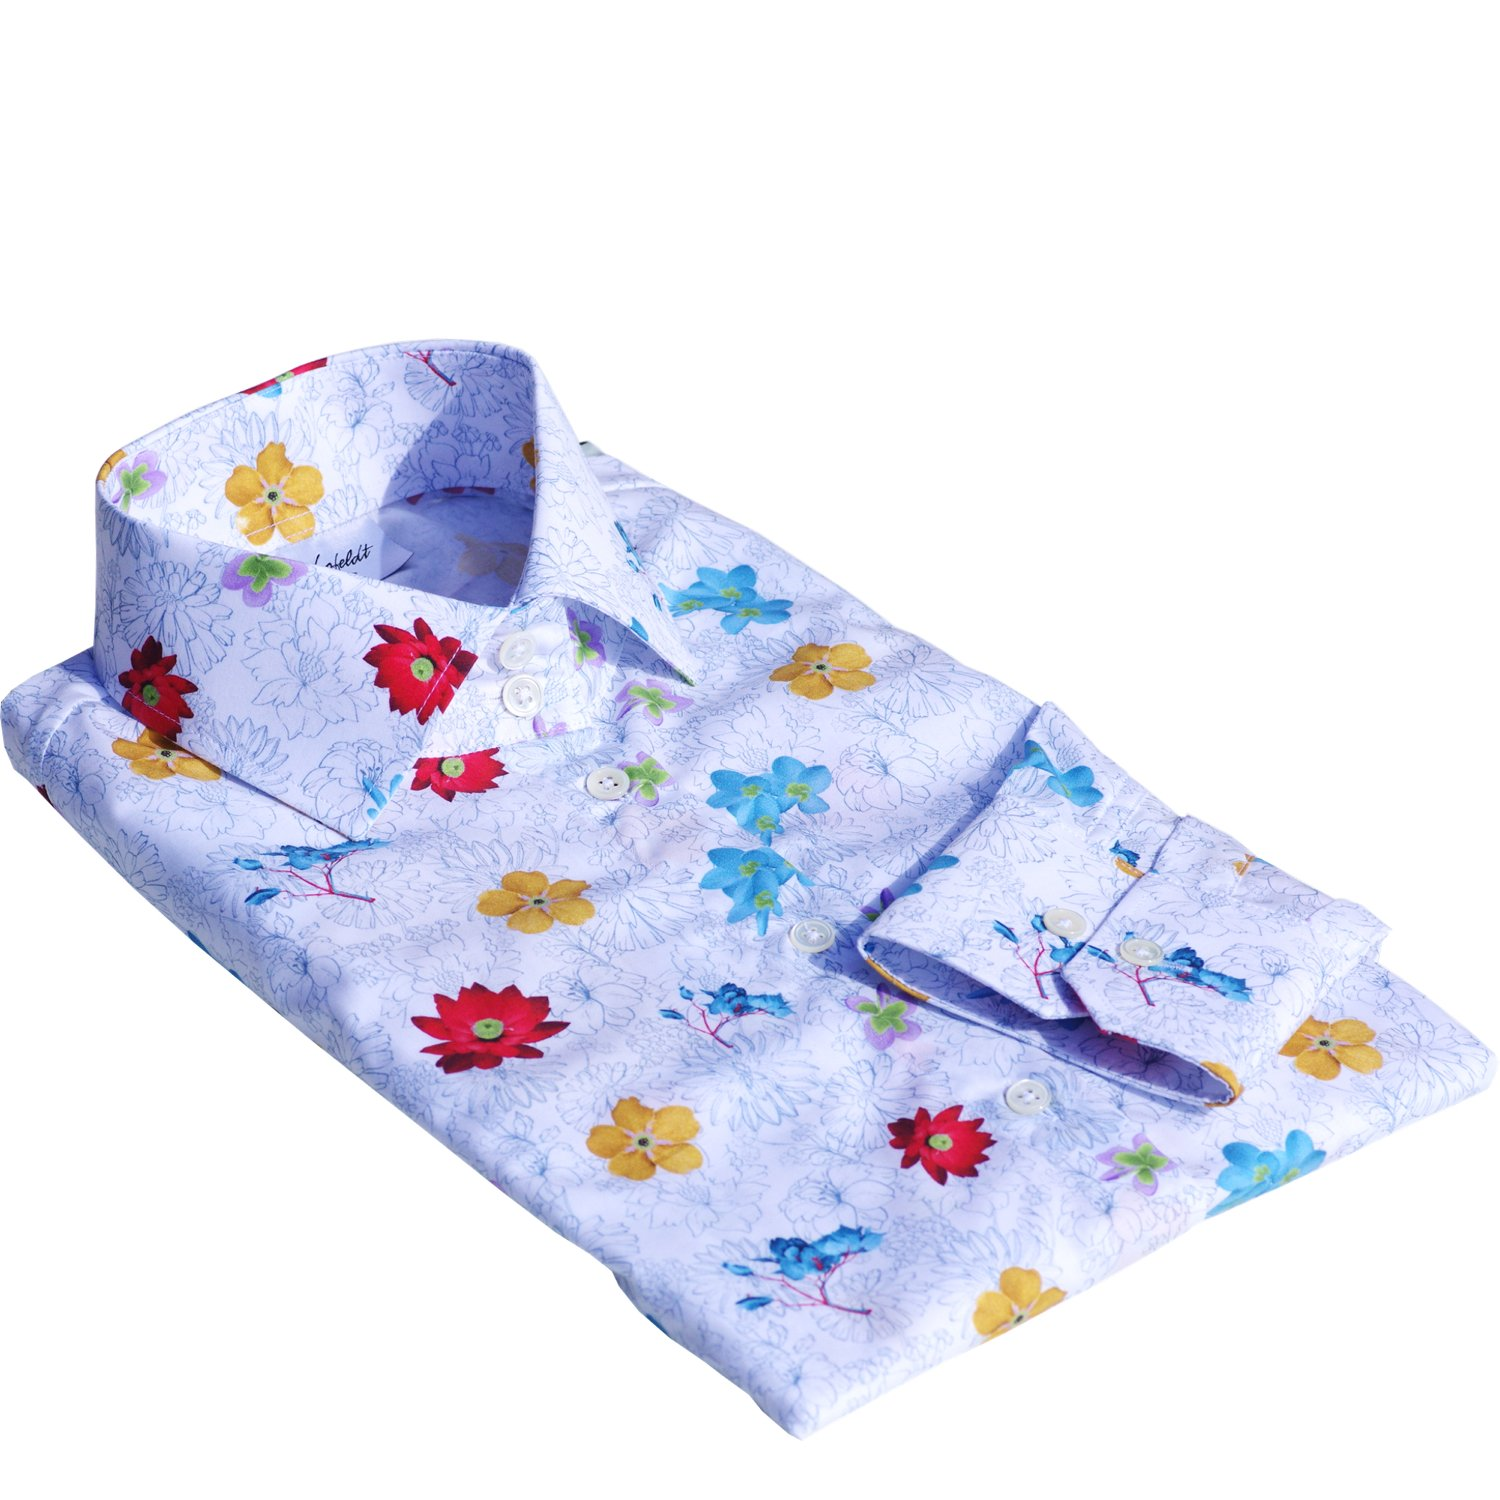 NICE dress shirt with flowers